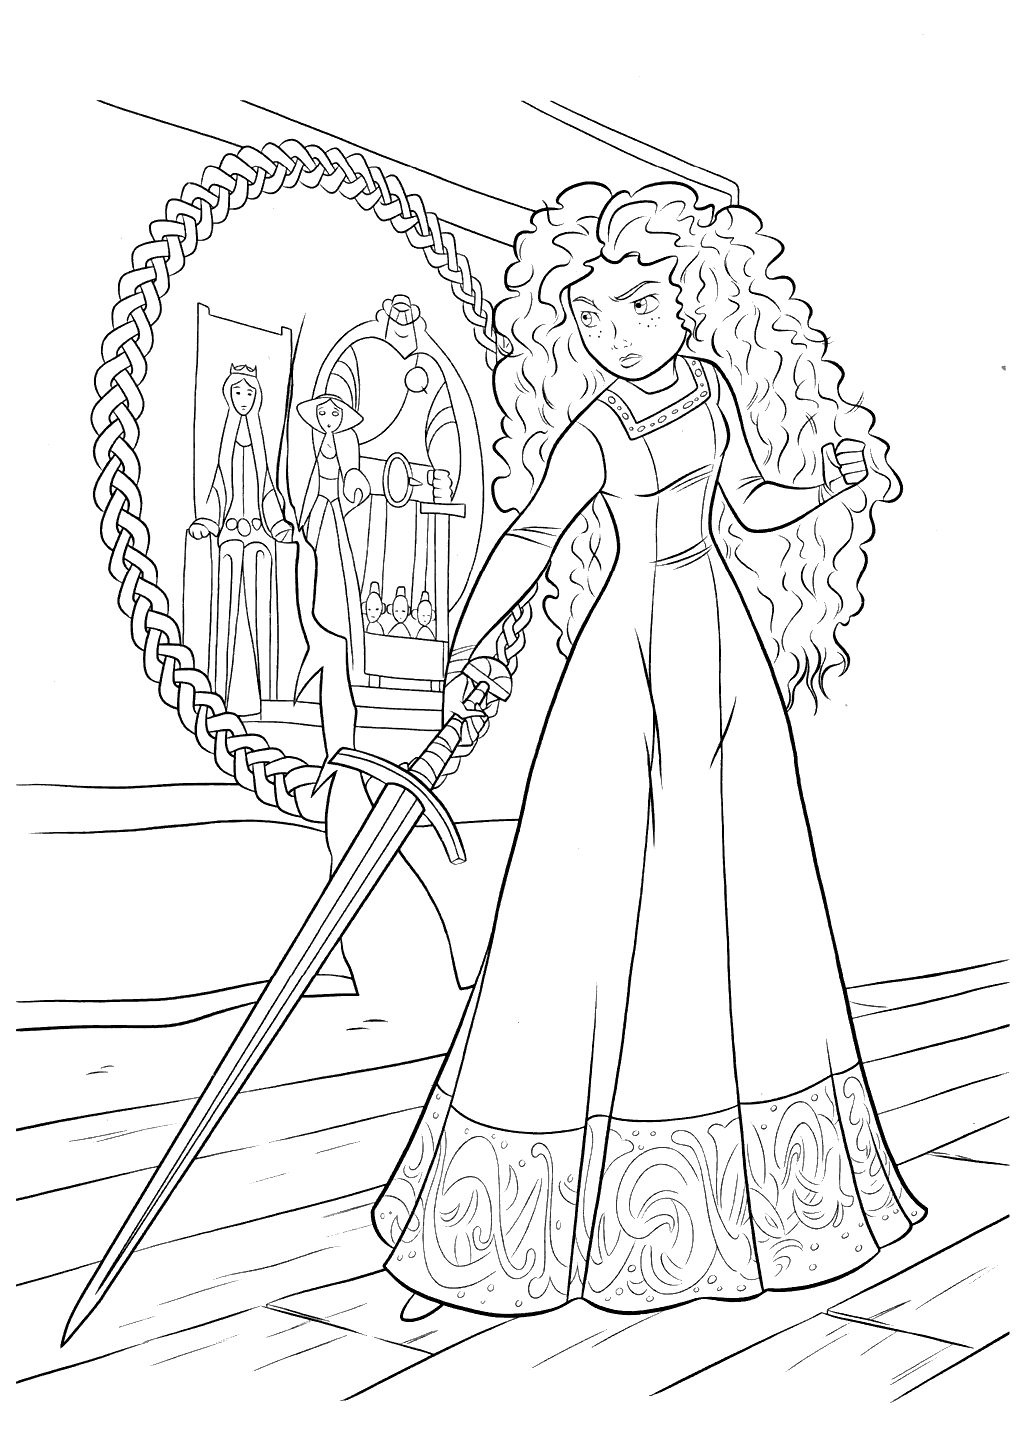 Brave Kid Coloring Page